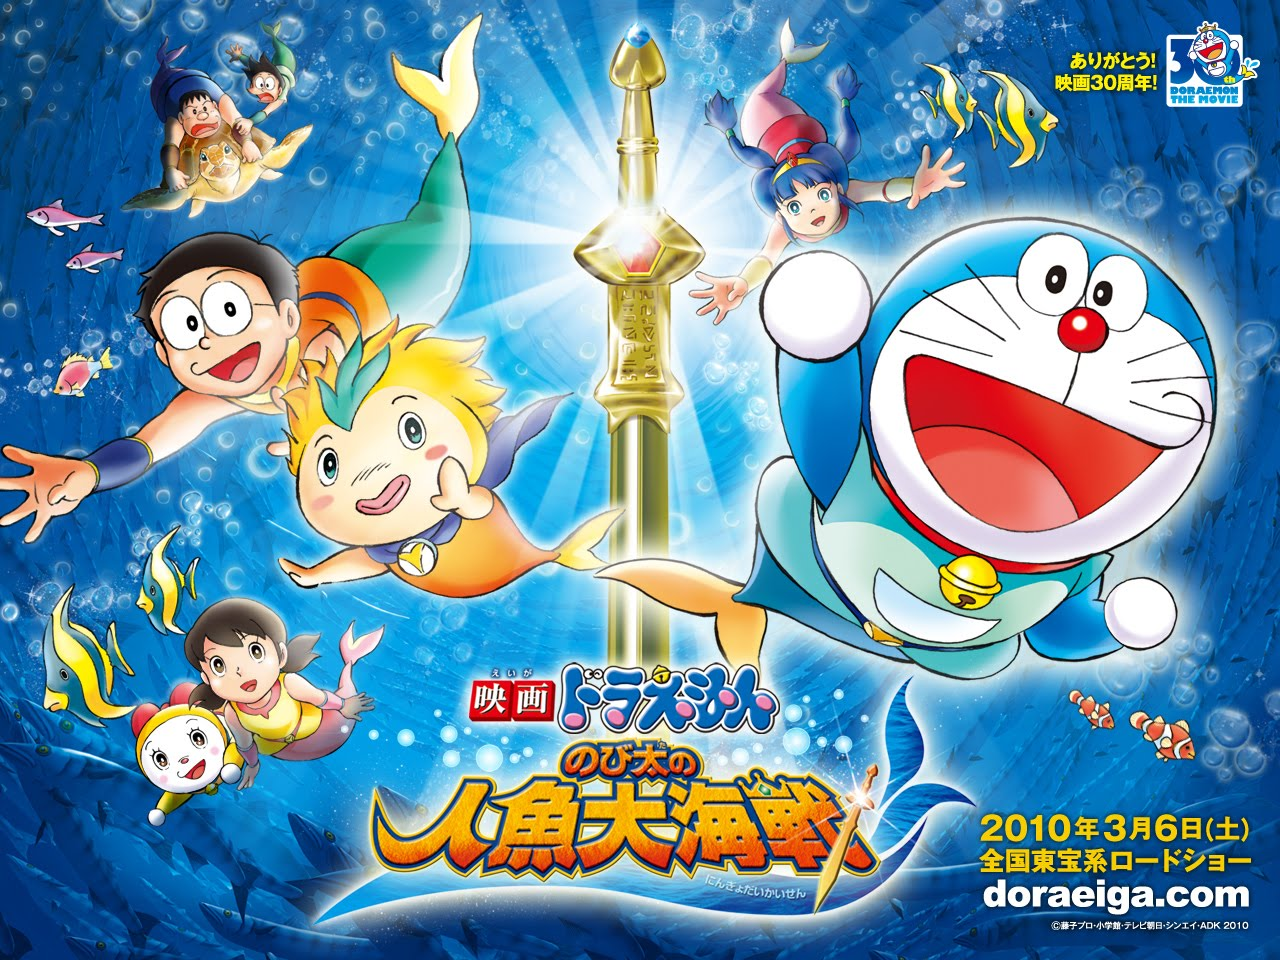 Manga And Anime Wallpapers Doraemon The Movie Wallpaper Hd